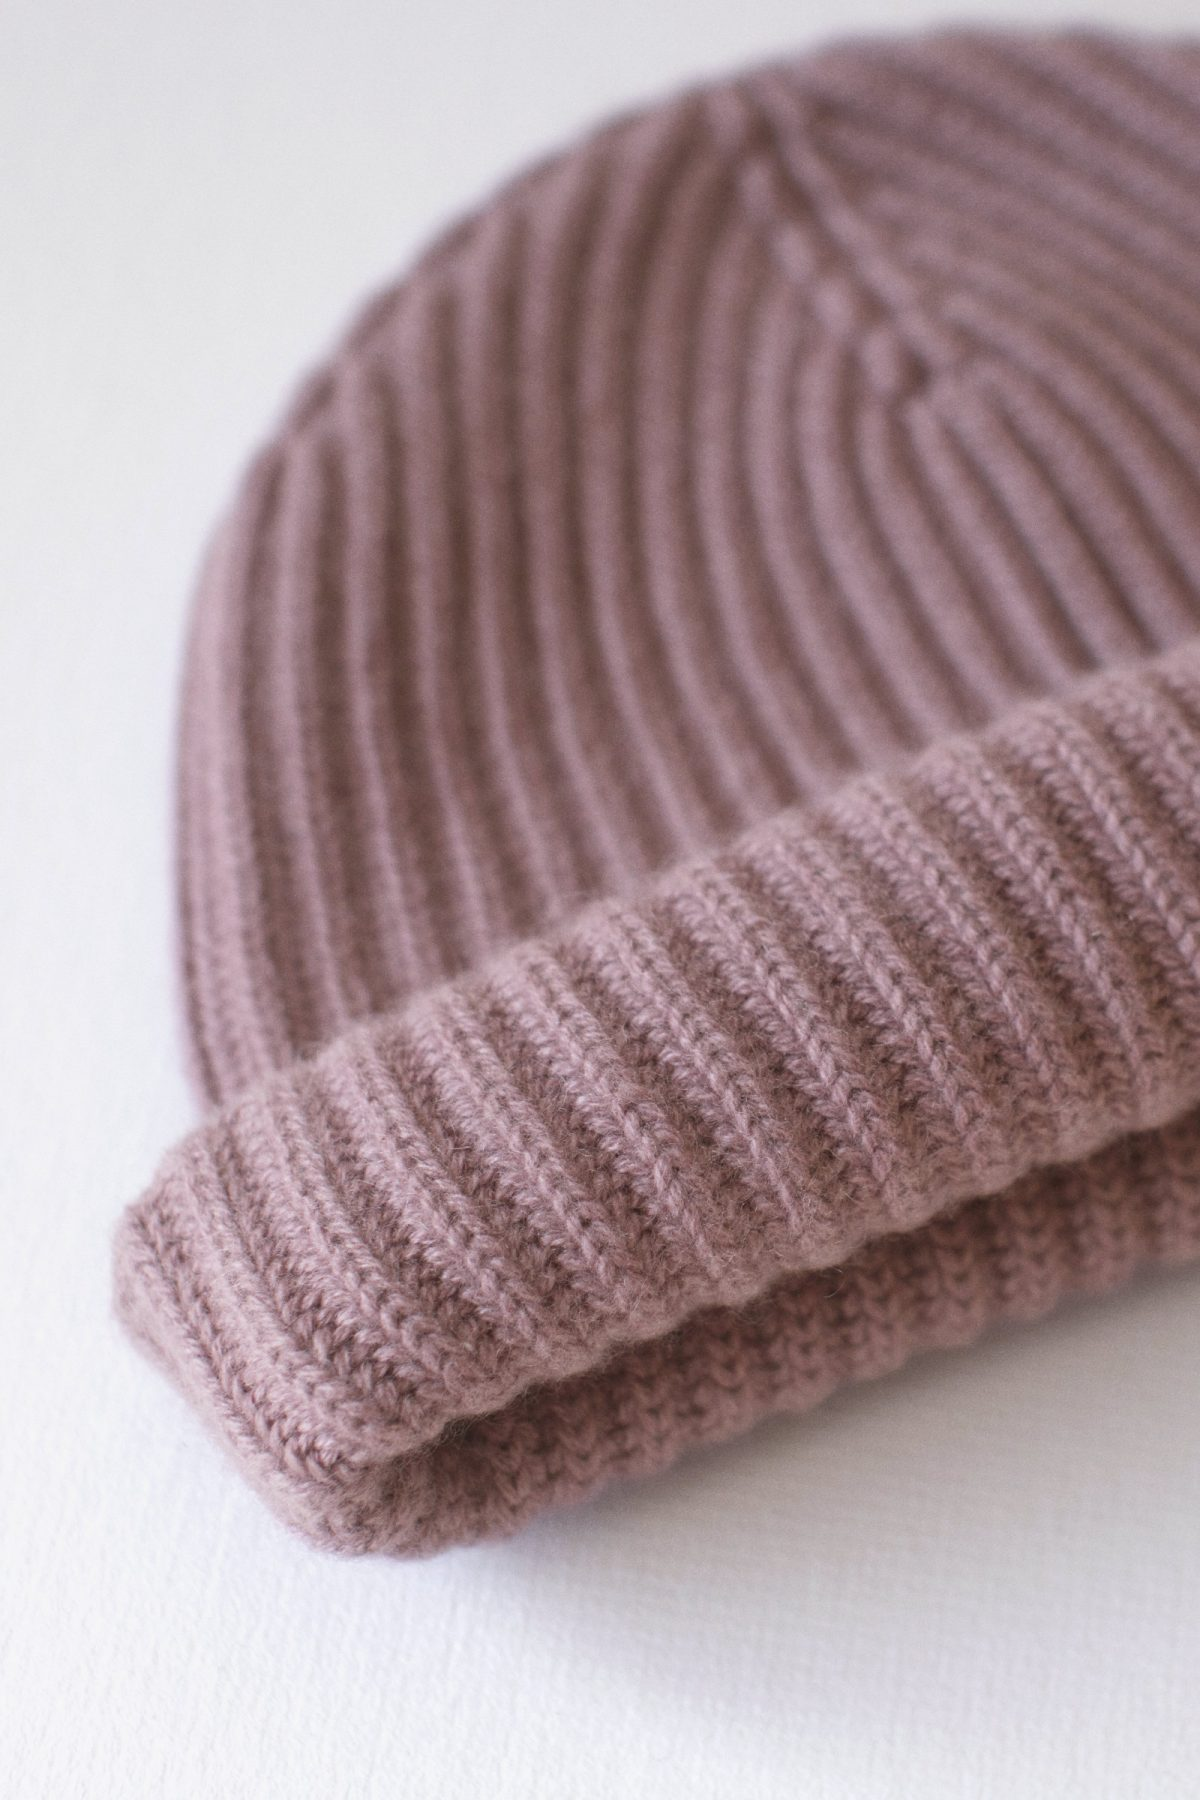 100% Pure Luxury Cashmere Wool Knit Beanie with Cardigan Stitch Ribbed - Made In Scotland - Dusk Pink - Collection 001 - Riachi Studio